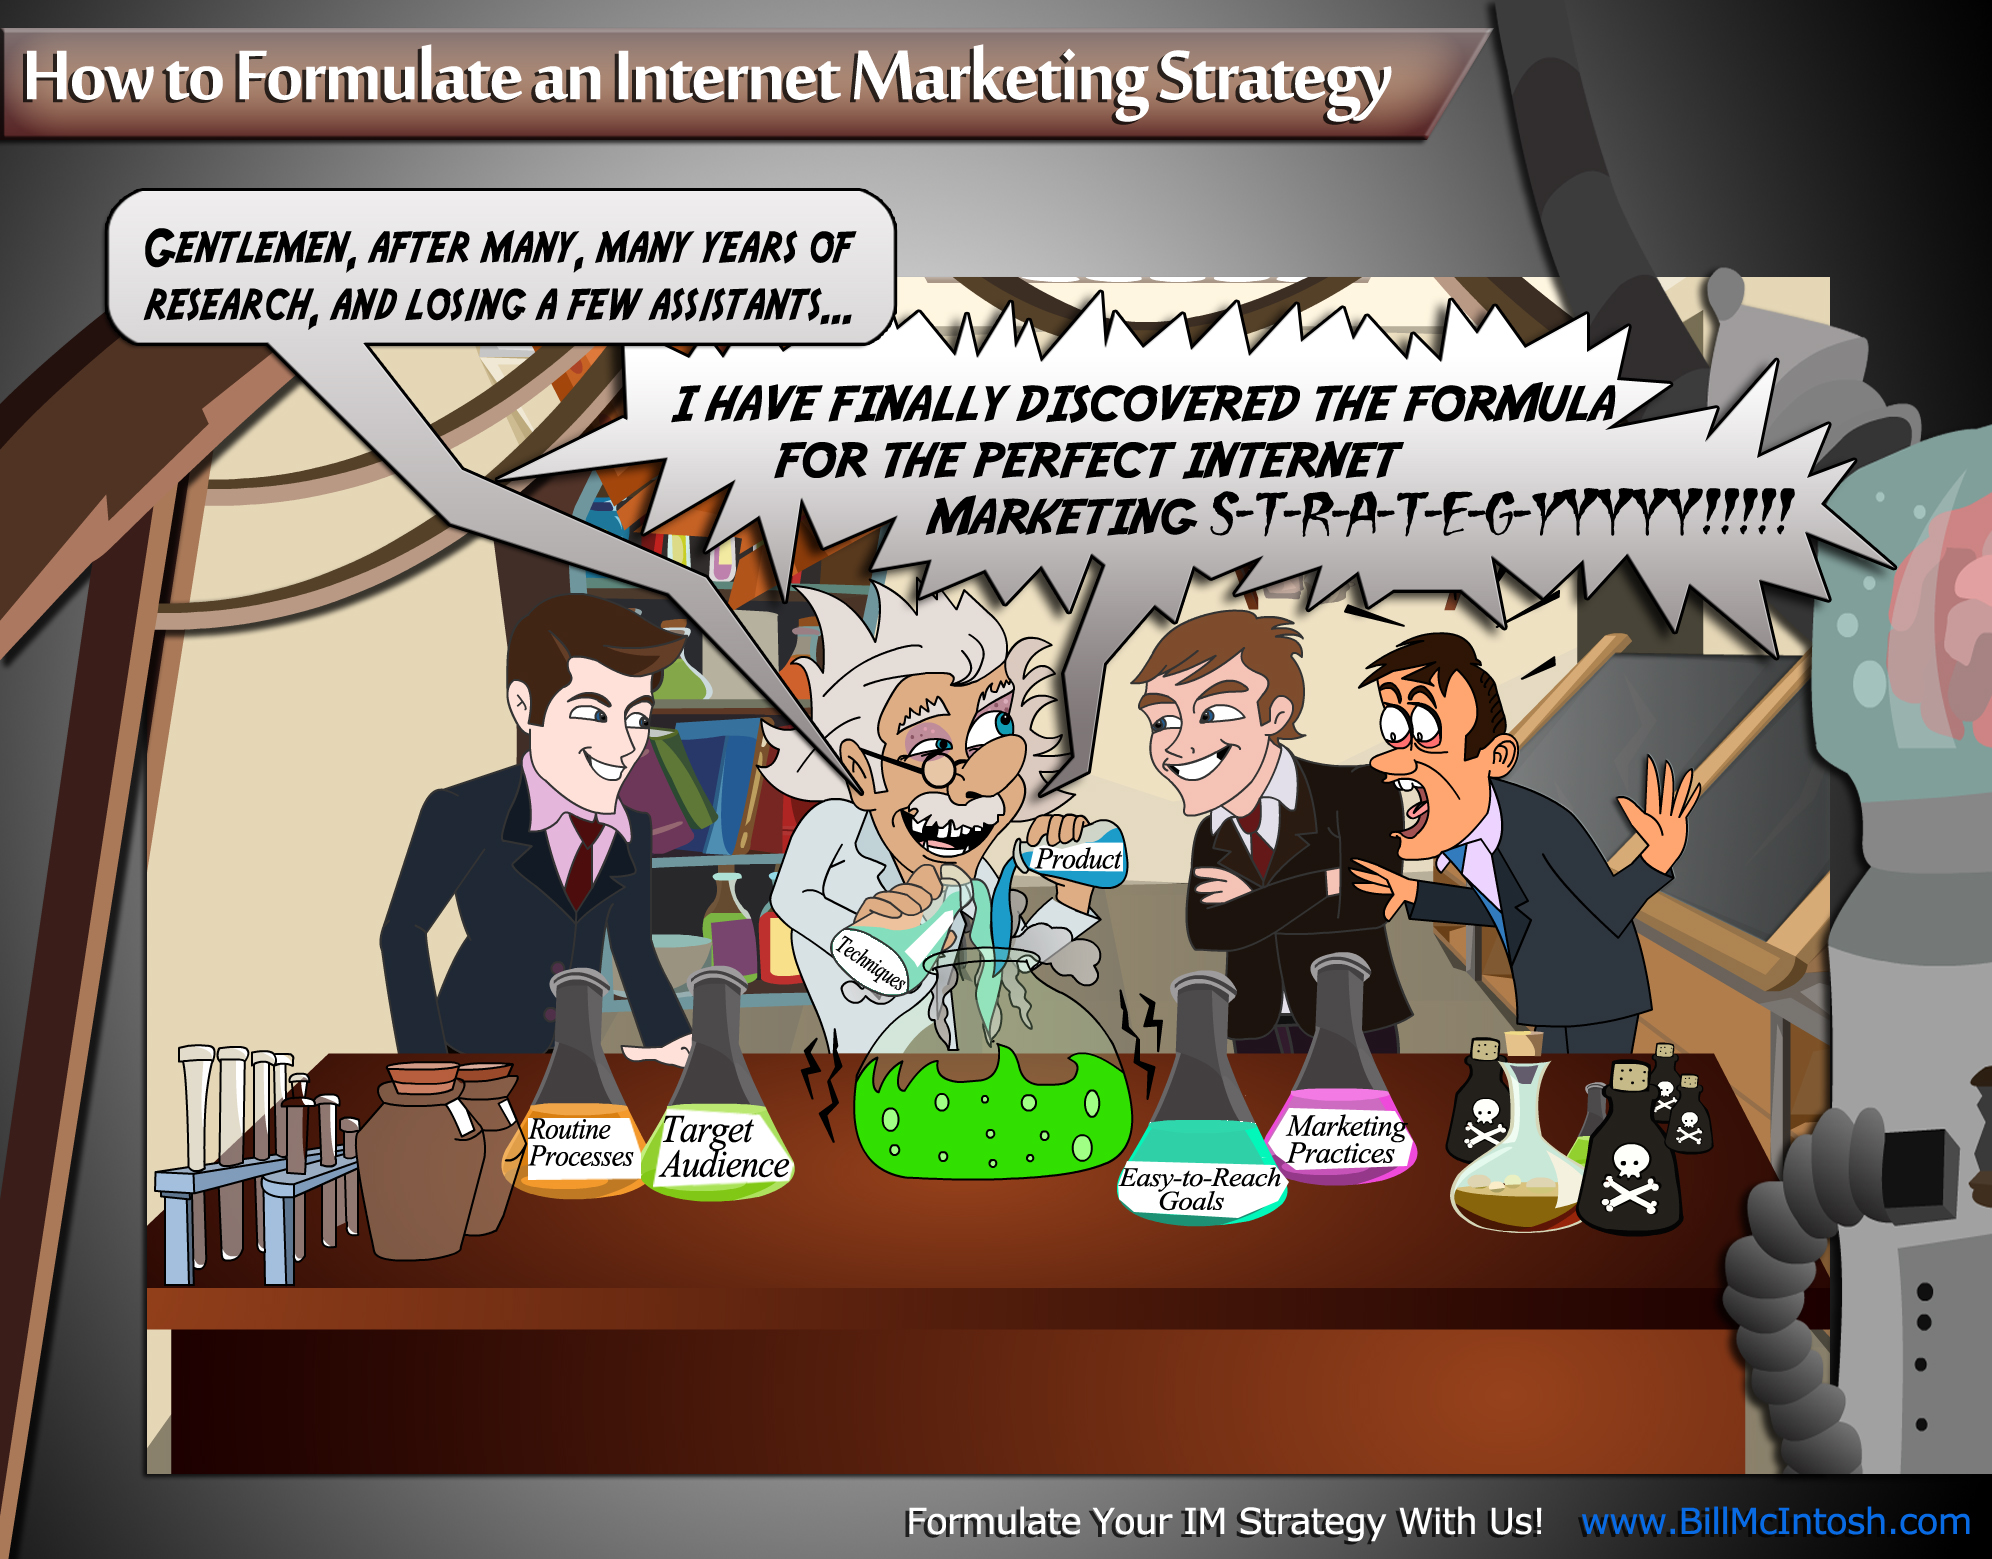 How To Forumulate an Internet Marketing Strategy